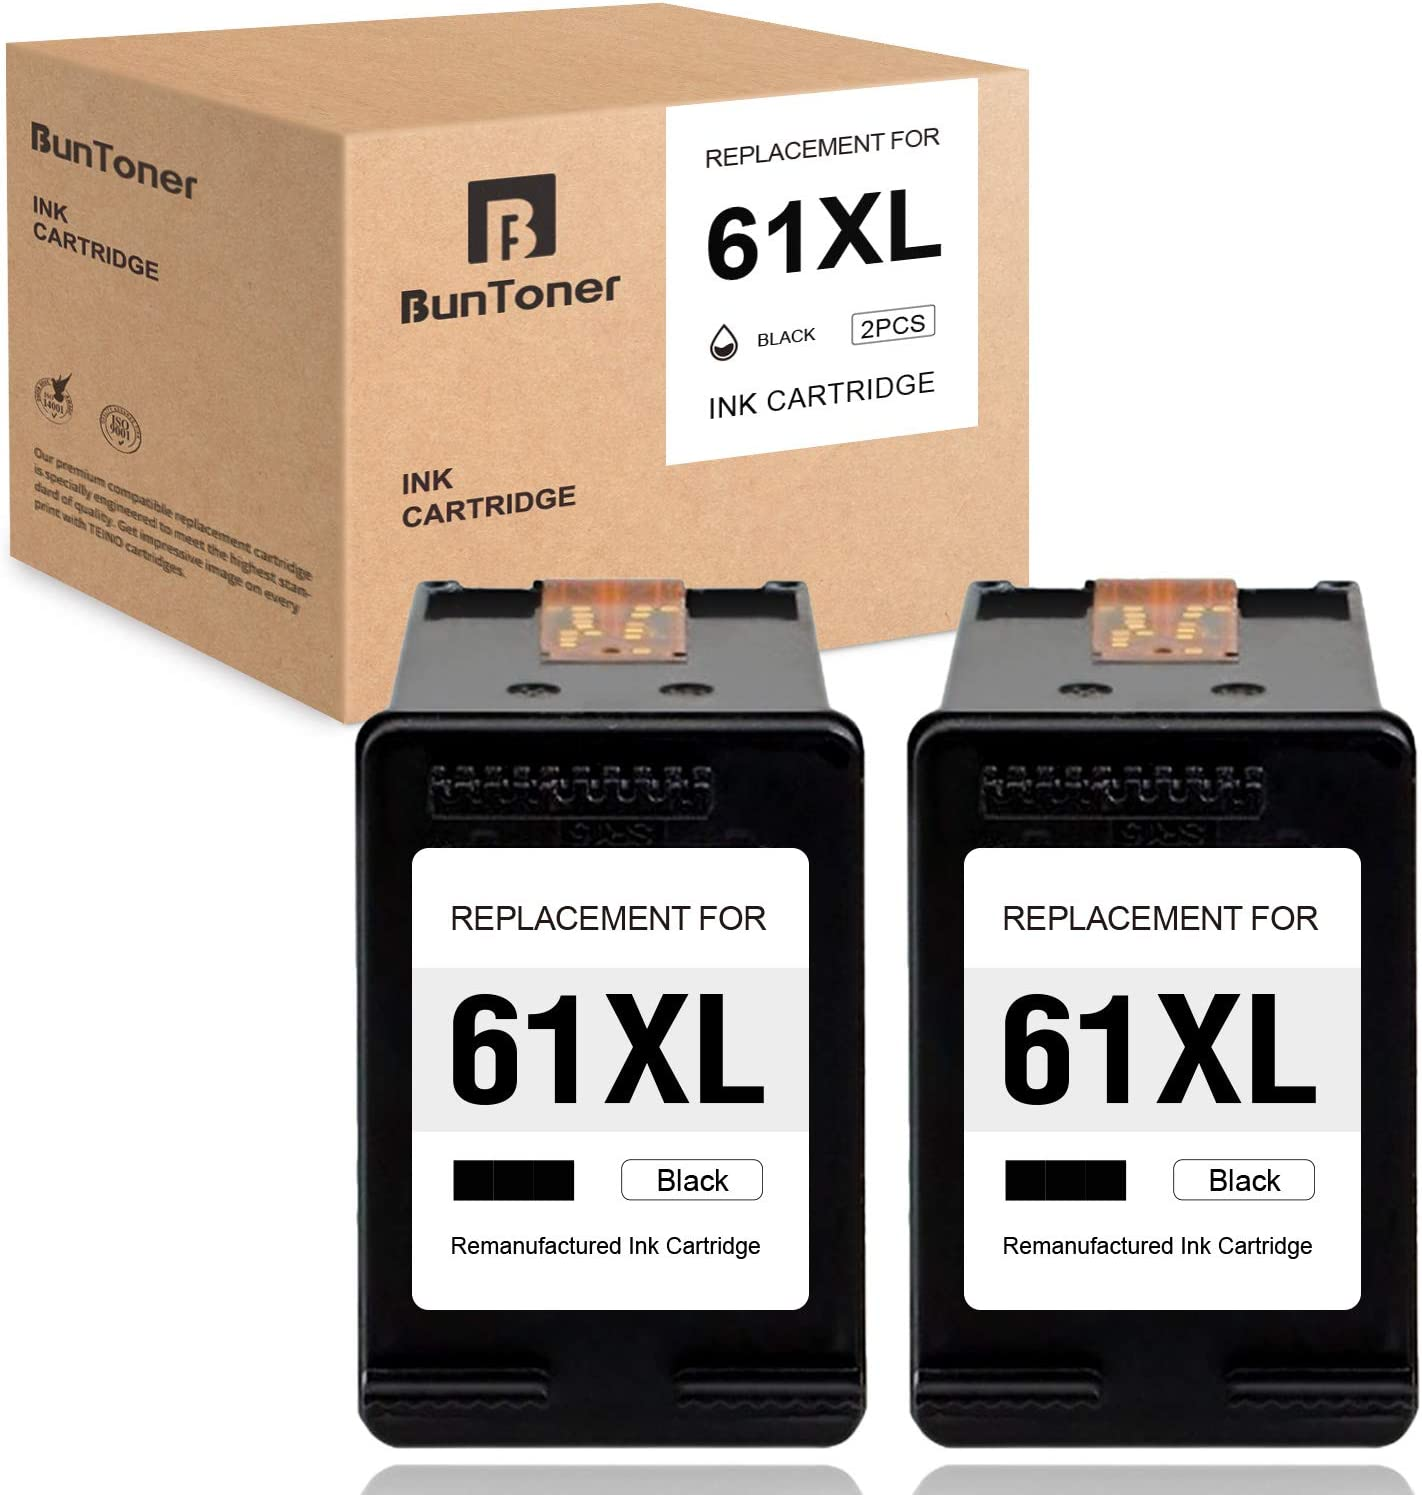 BUNTONER Remanufactured Ink Cartridges Replacement for HP 61 61XL use with HP Envy 5530 4500 4502 4501 5535 OfficeJet 4630 4635 4632 2620 DeskJet 2540 3050 3510 1000 2050 1510 1512 (Black, 2-Pack)